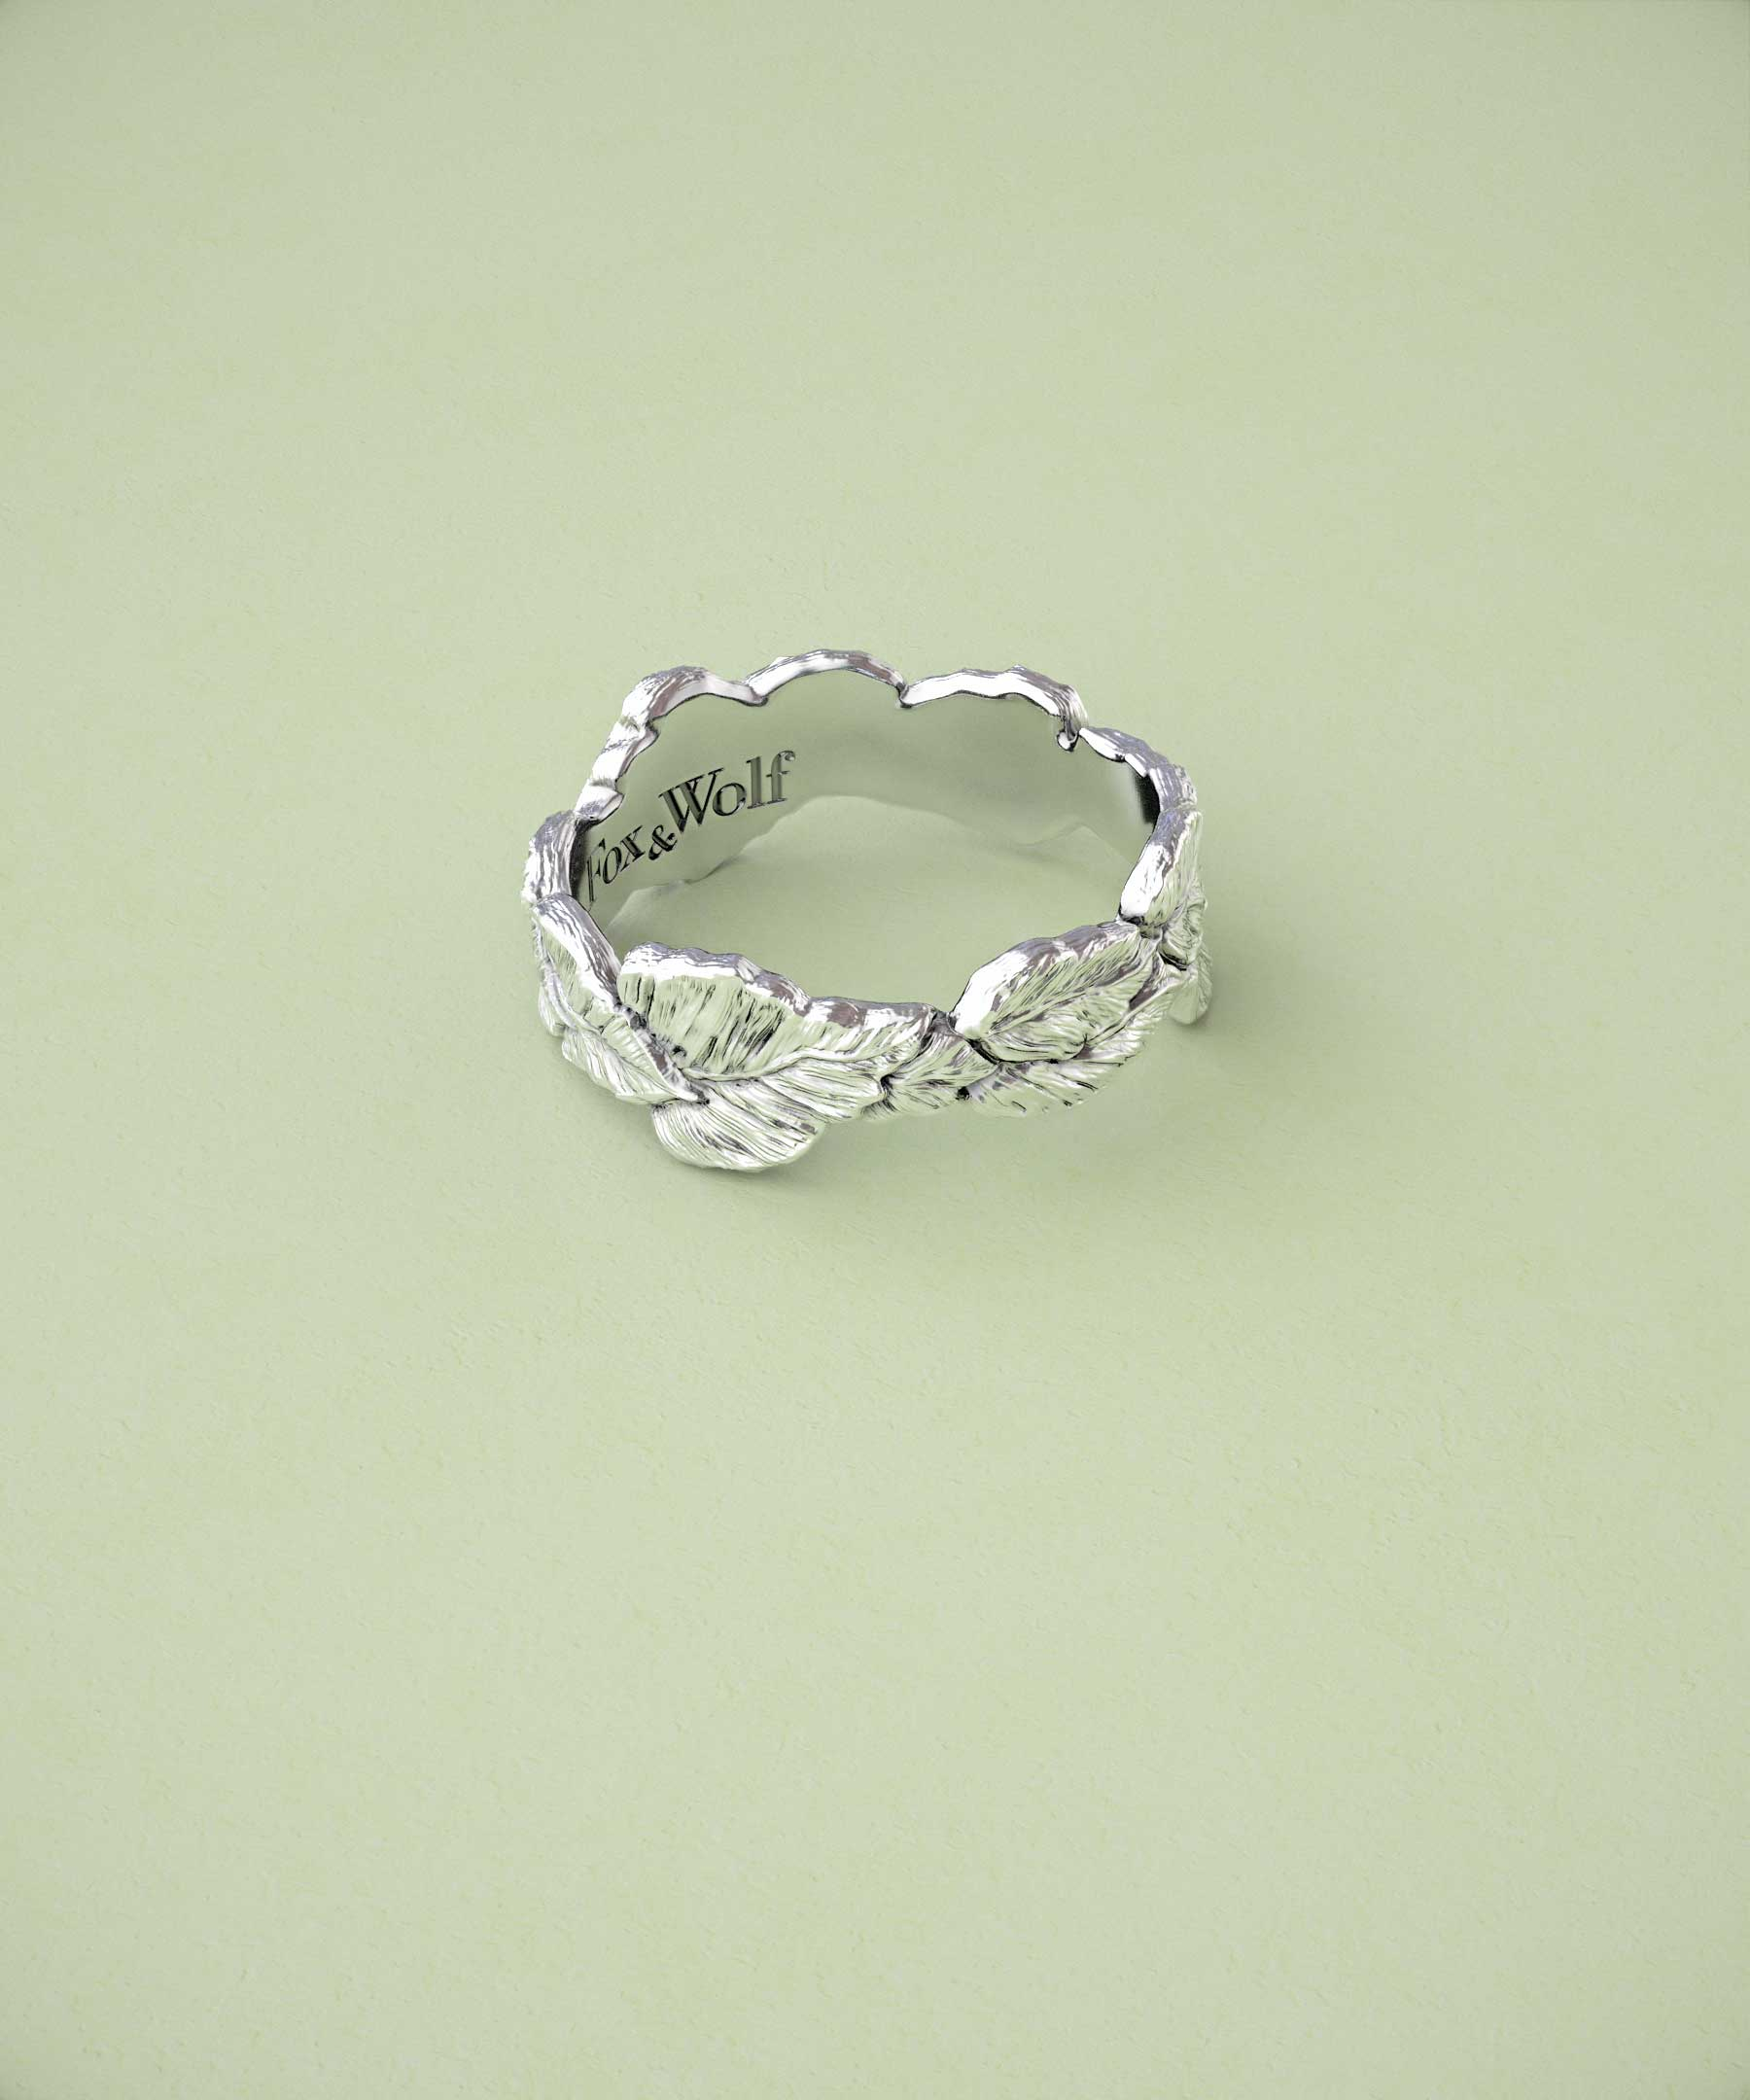 aea2ccb4fb332 Fox and Wolf Jewelry - Leaf Ring Band In Silver